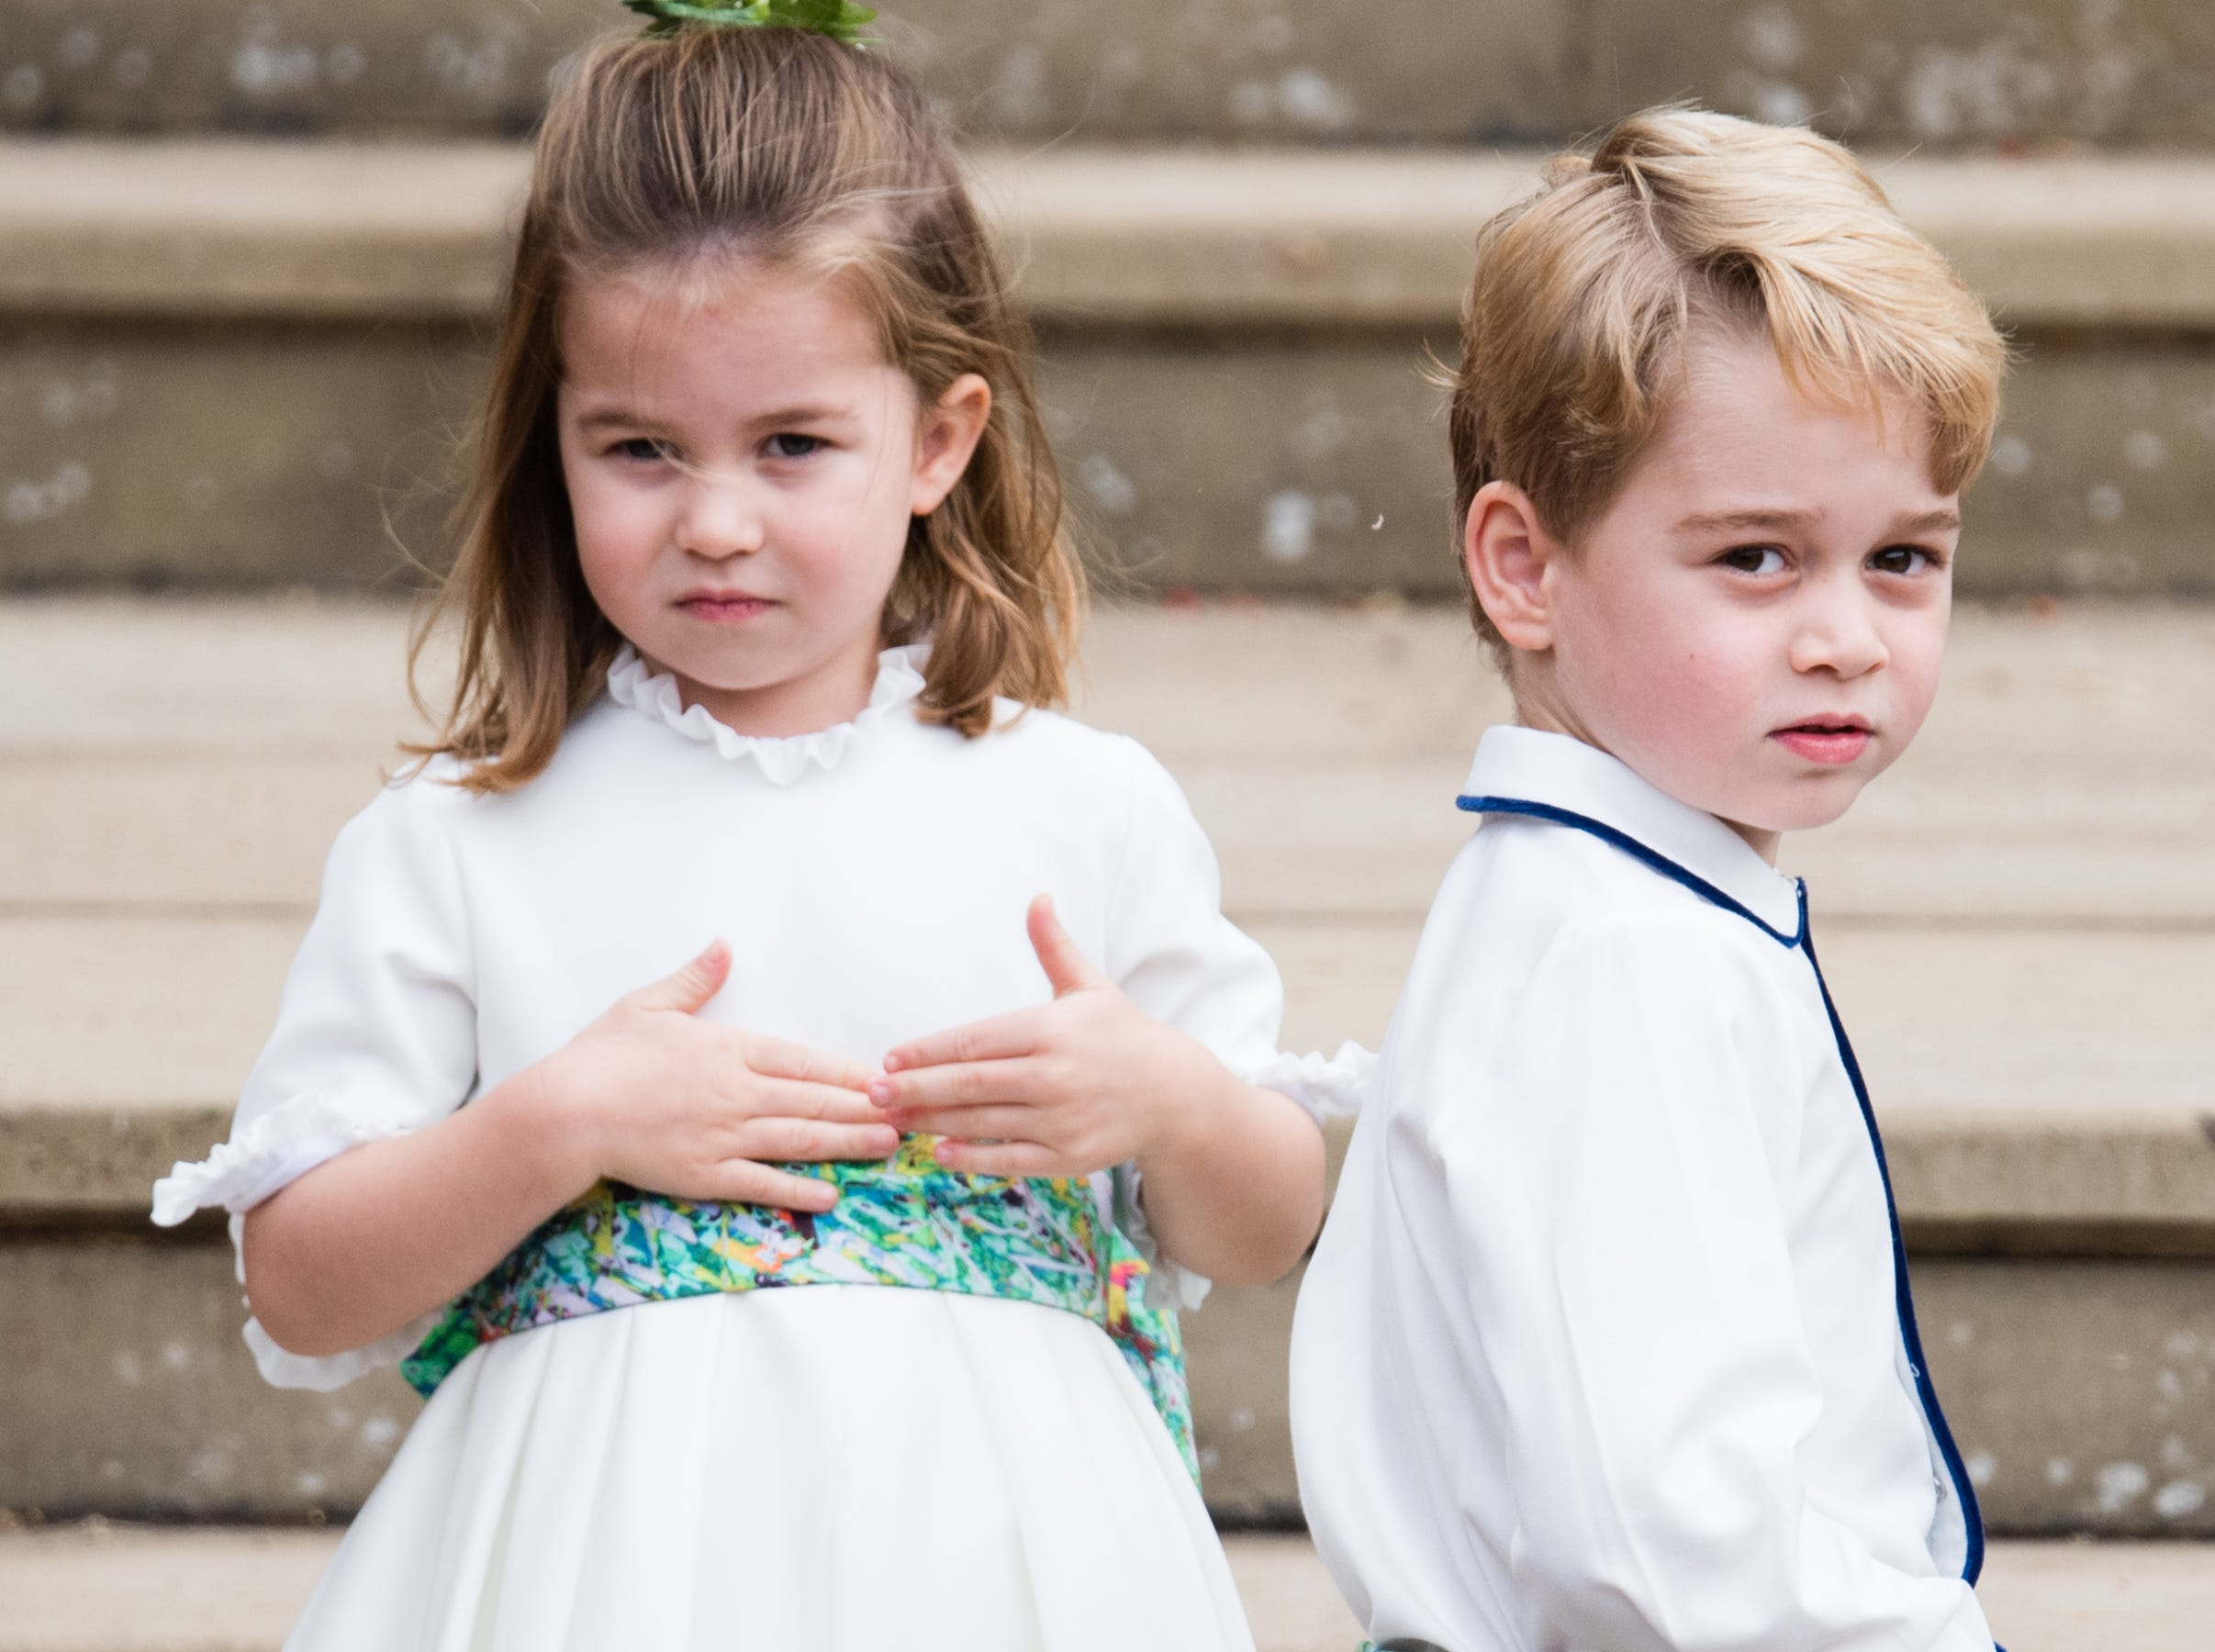 October 12: Princess Charlotte and Prince George stole the show at Princess Eugenie's wedding in Windsor, England.